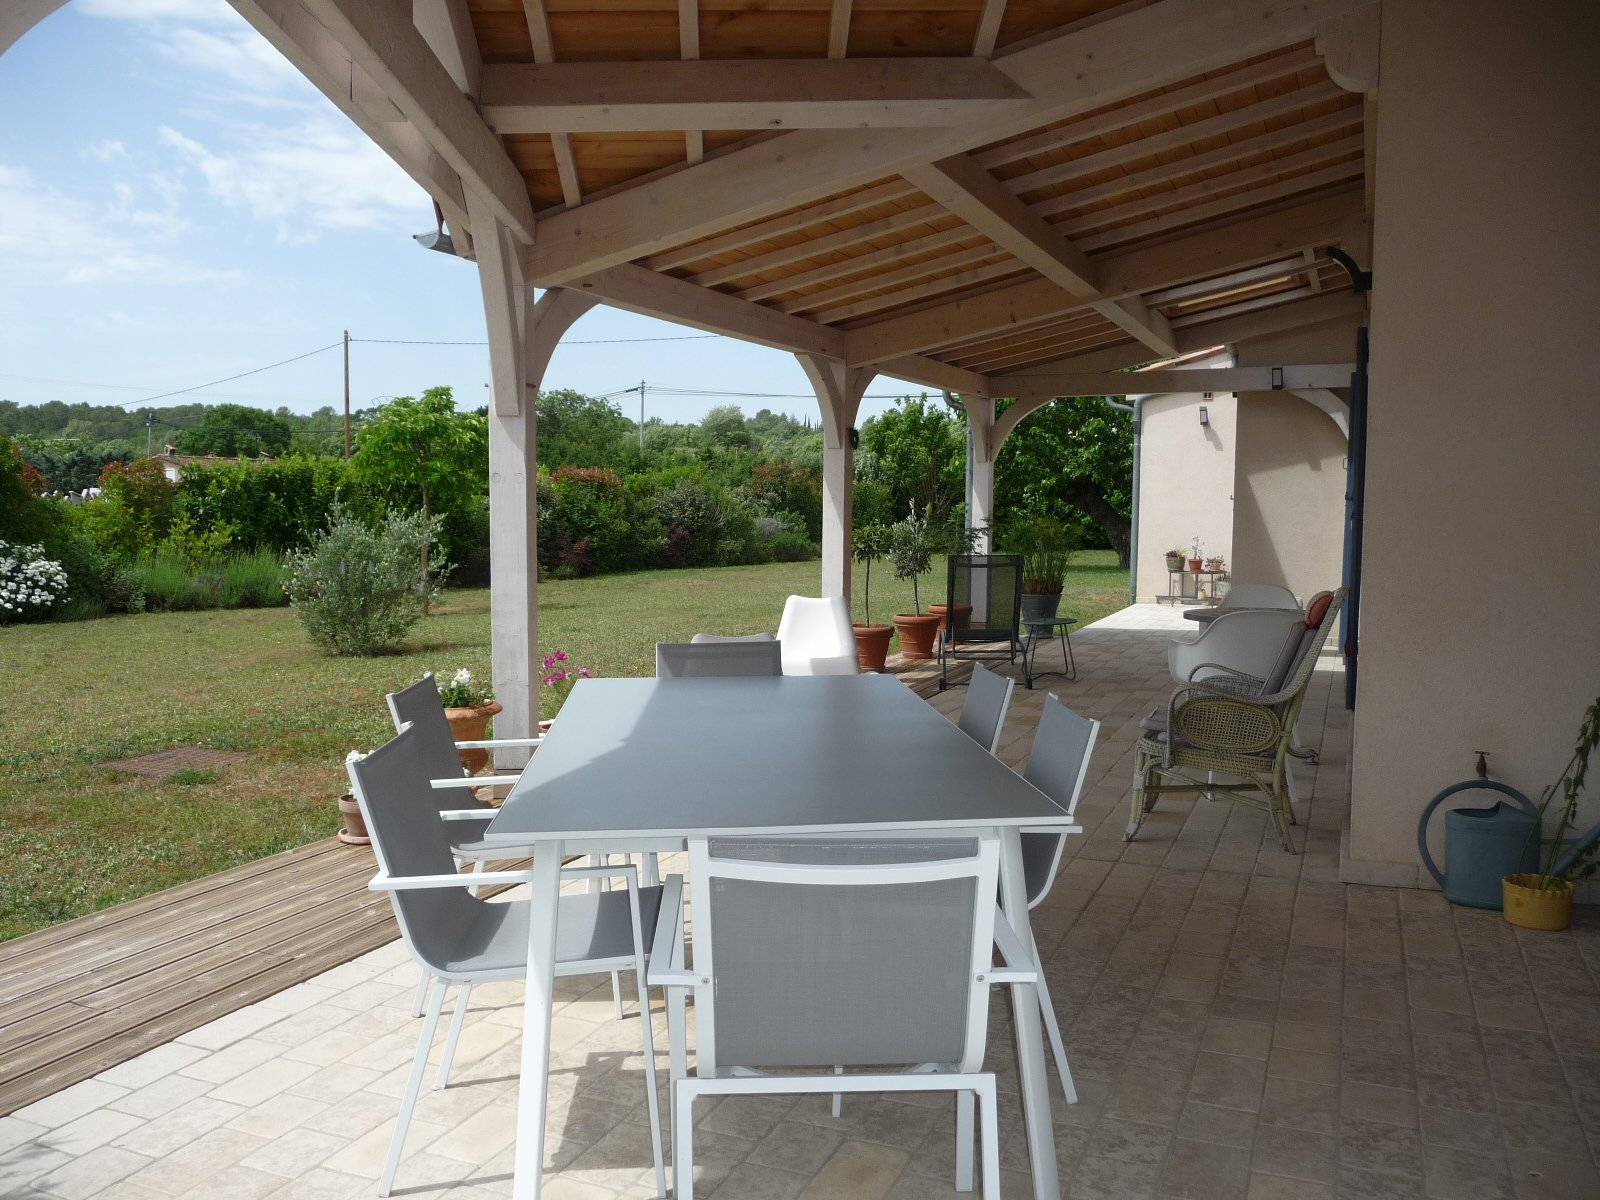 Villa in good condition on a nice plot of 2500m²